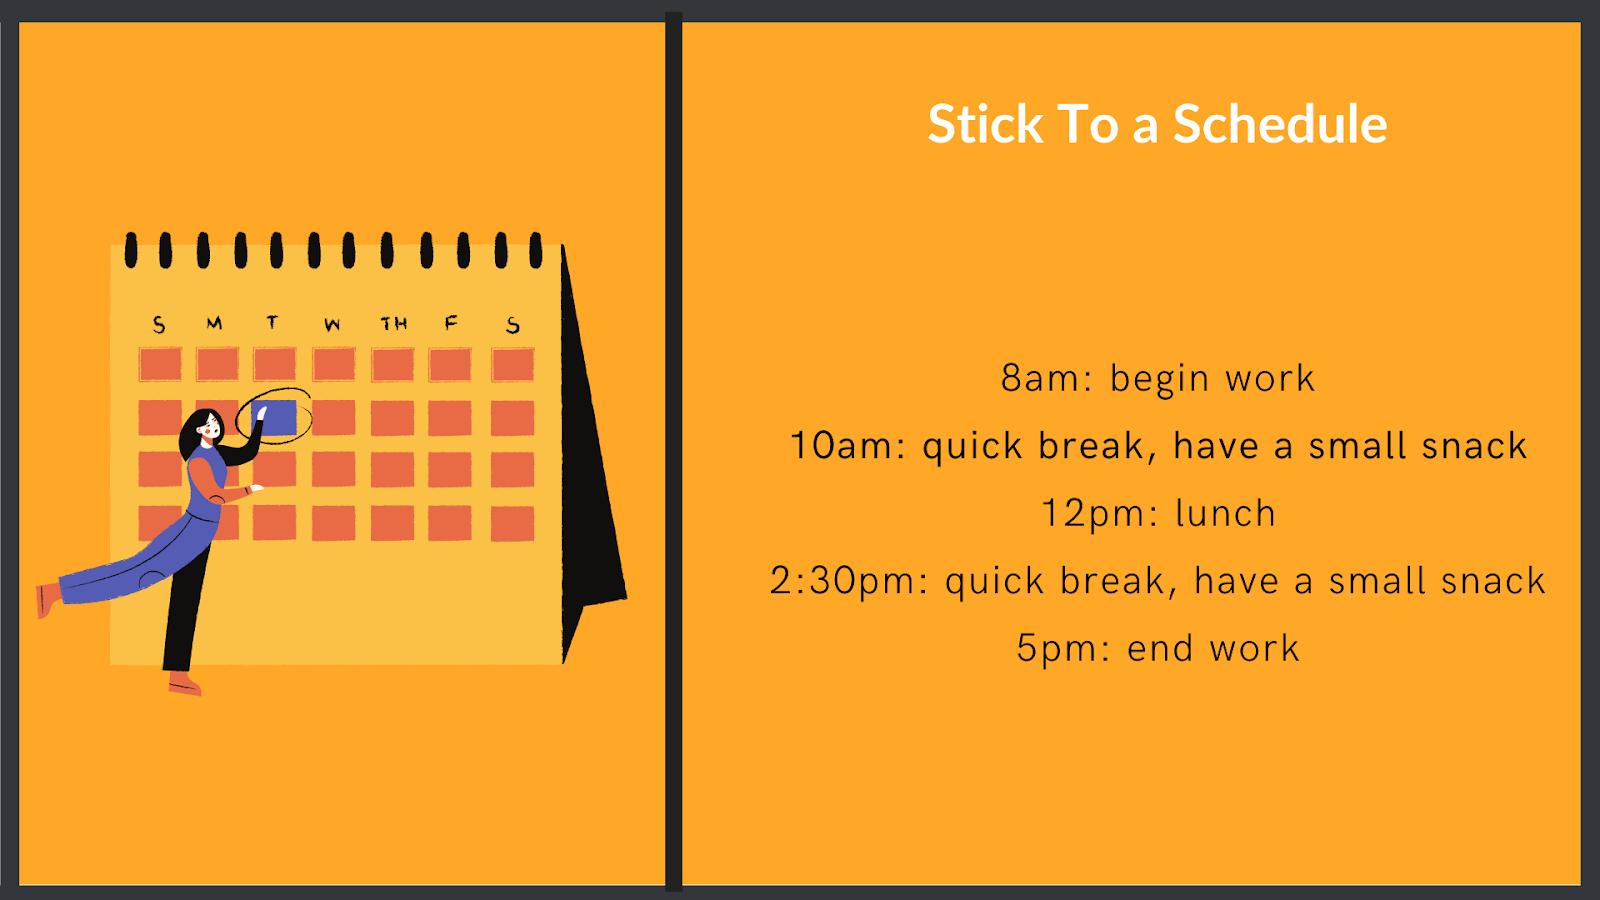 Stick to a schedule when working from home to stay productive